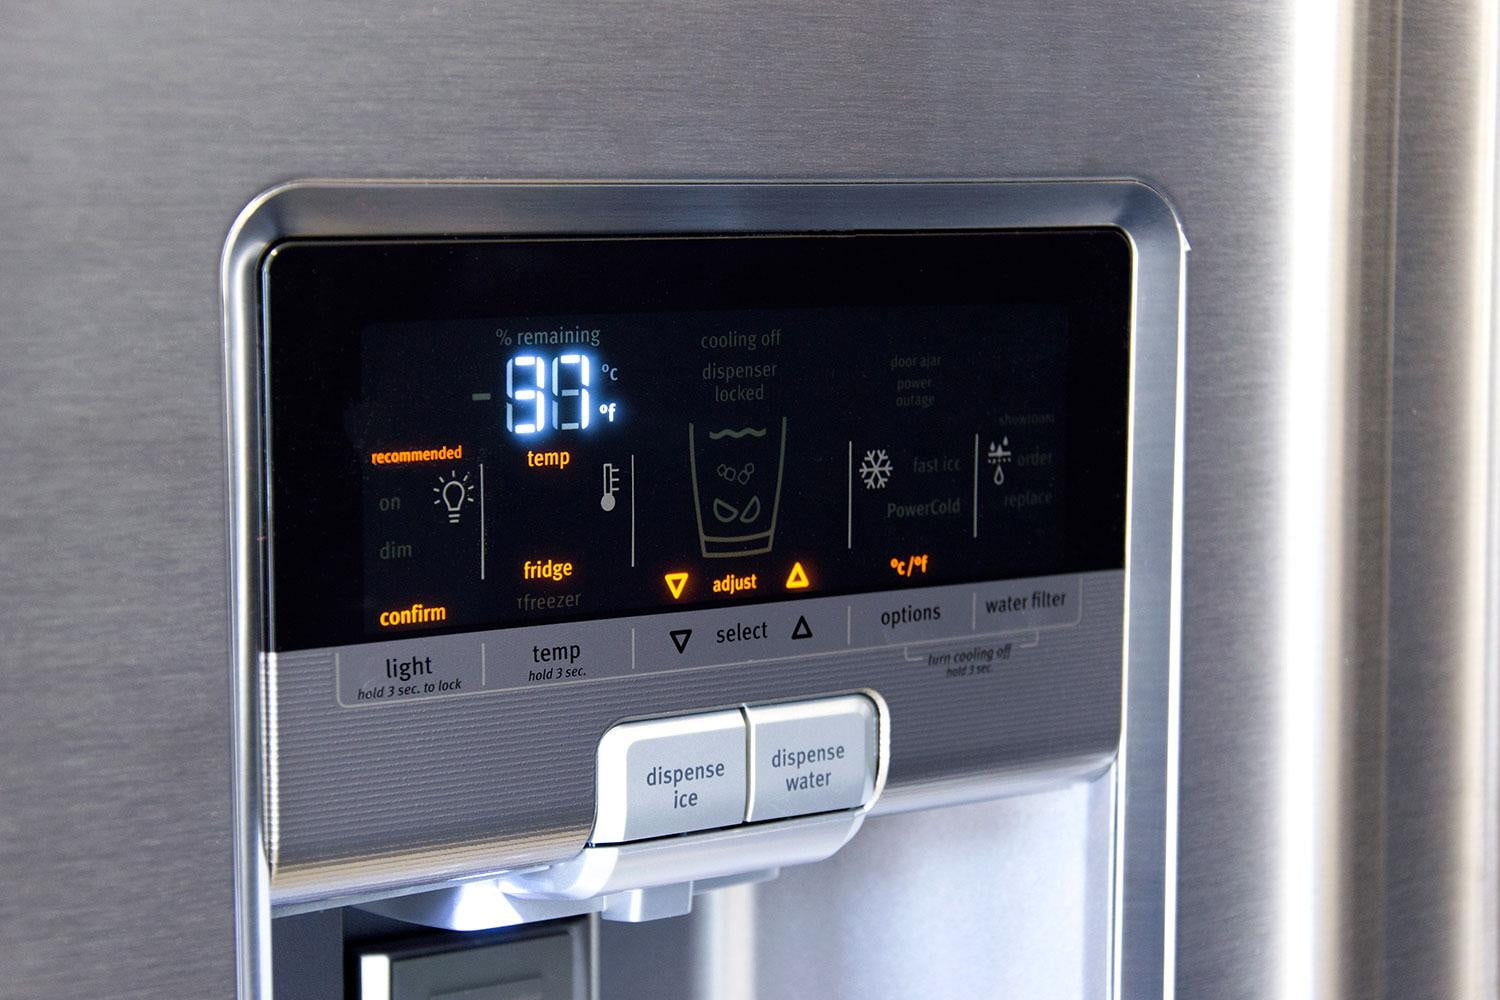 Maytag Mfx2876drm Refrigerator Review 4 Door French Door